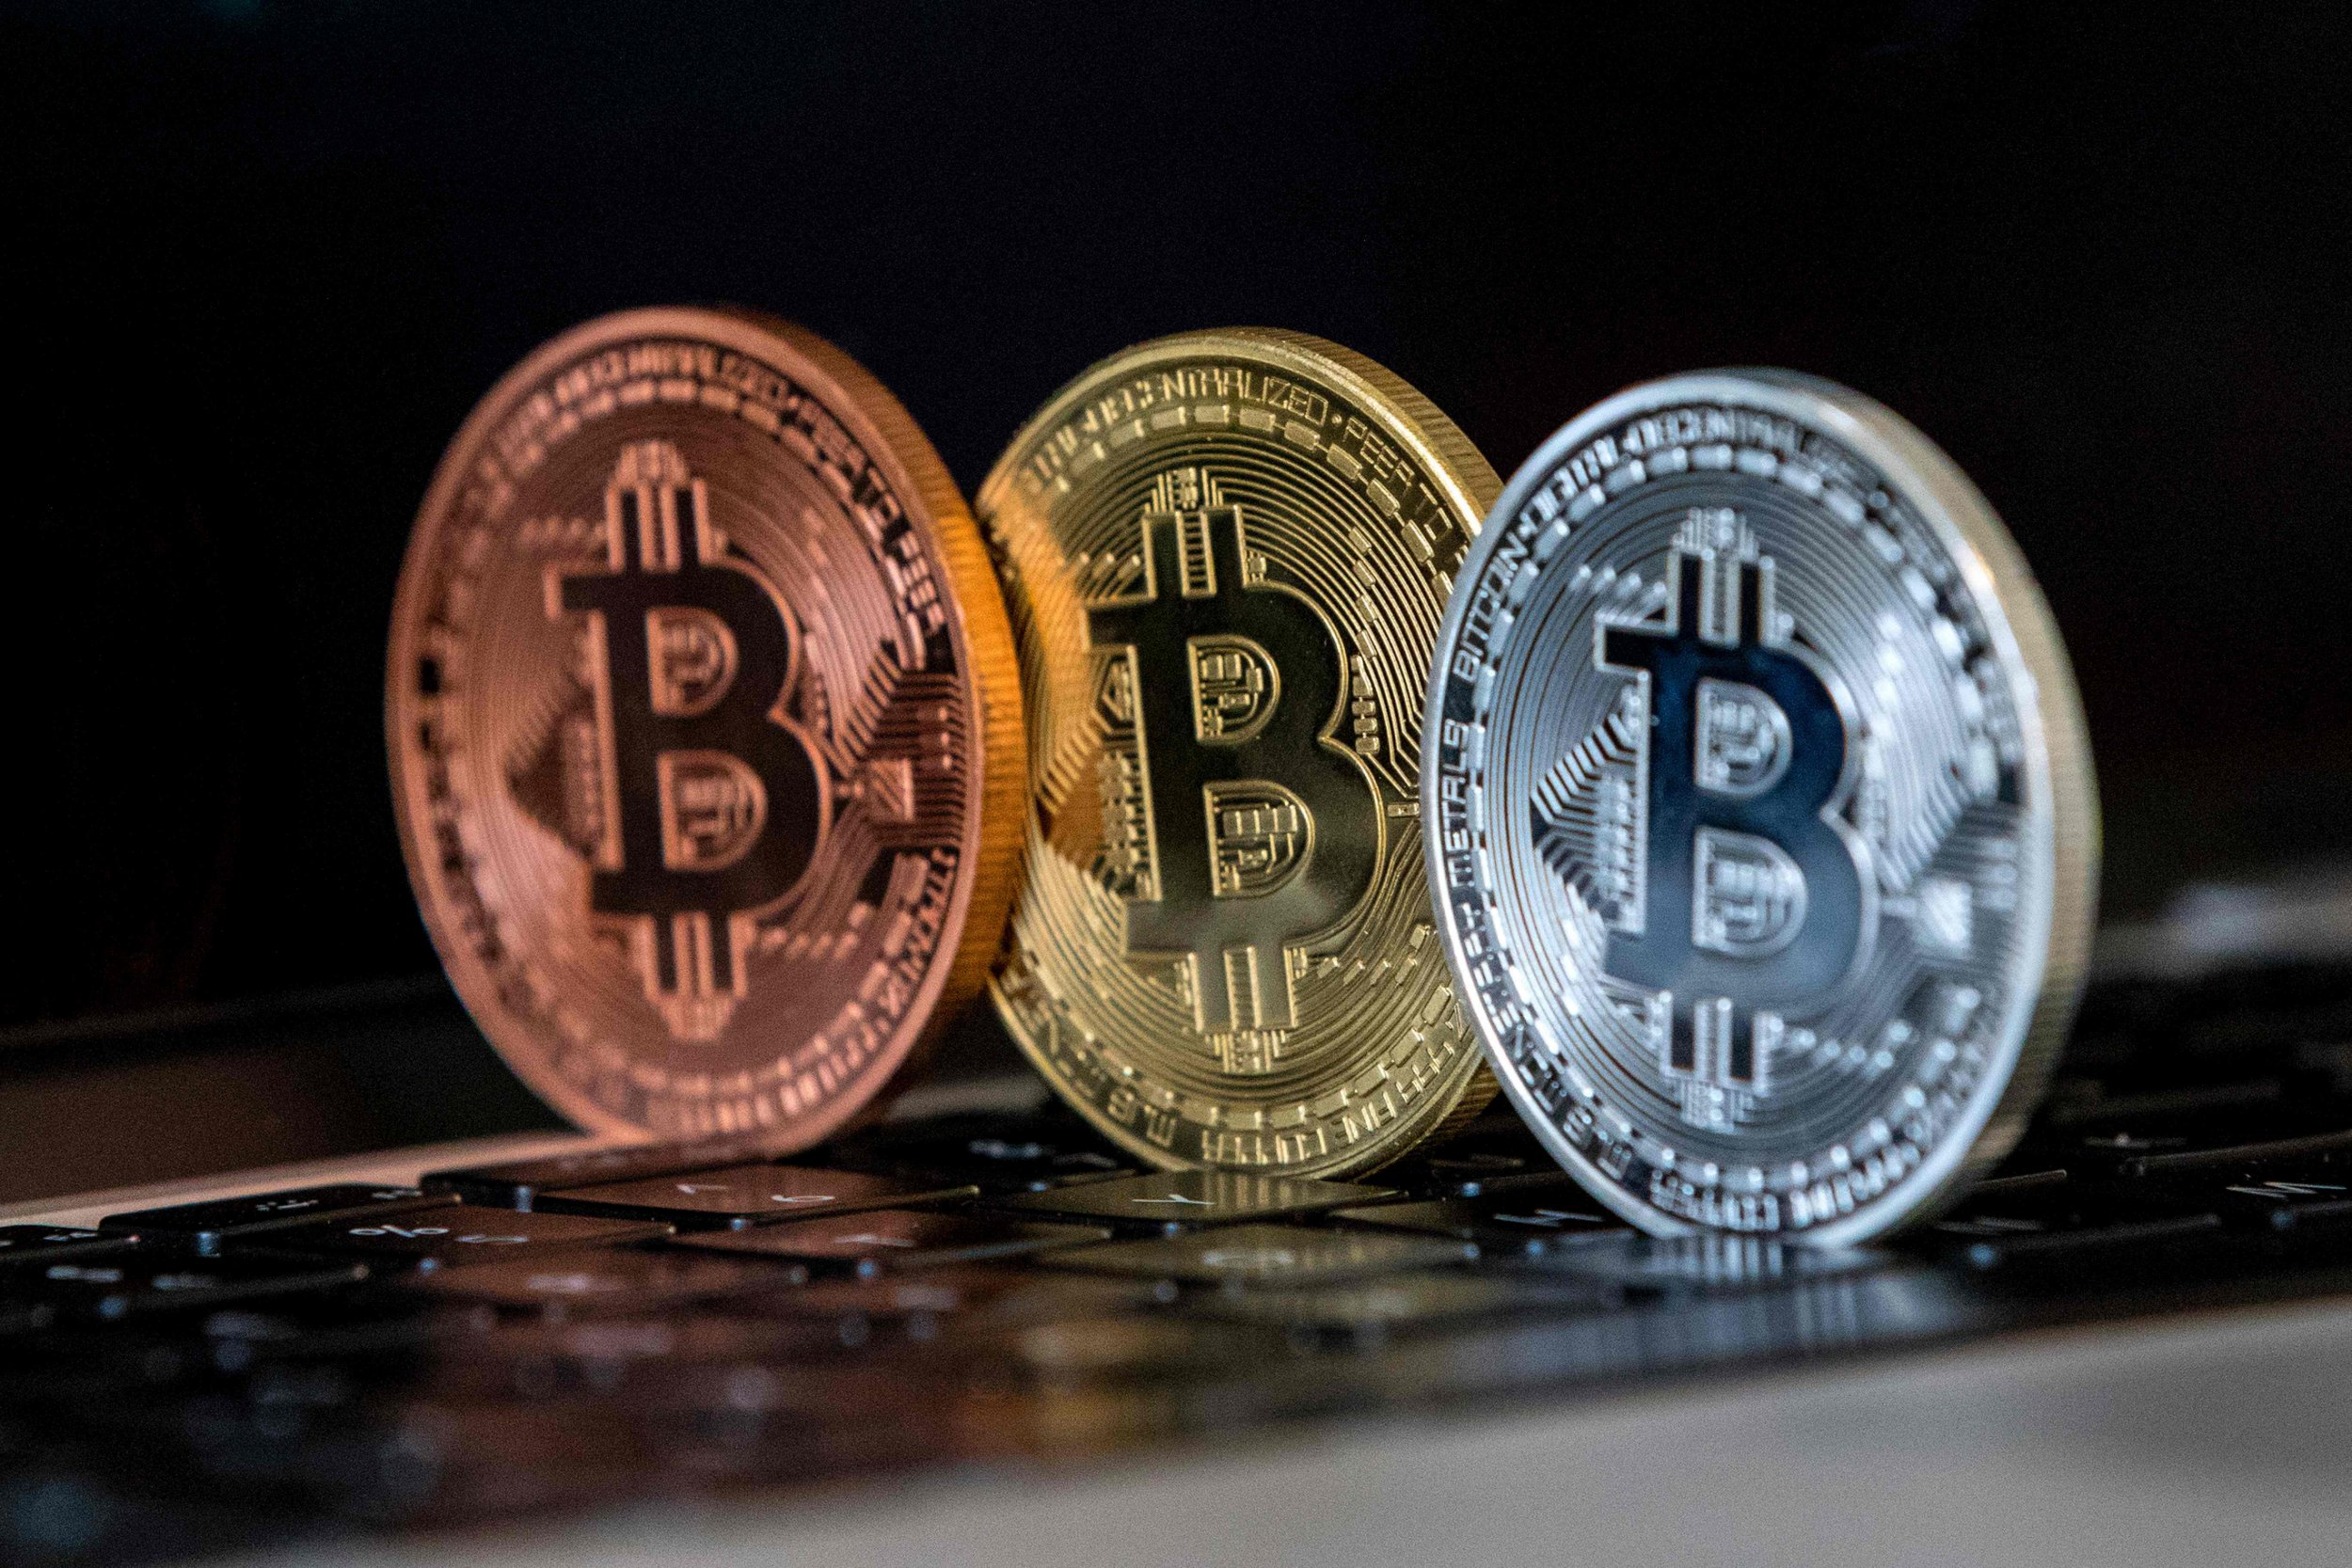 Bitcoin price booms as US Senate cryptocurrency hearing reassures market and boosts value of Ethereum, Ripple, Litecoin and alt-coins